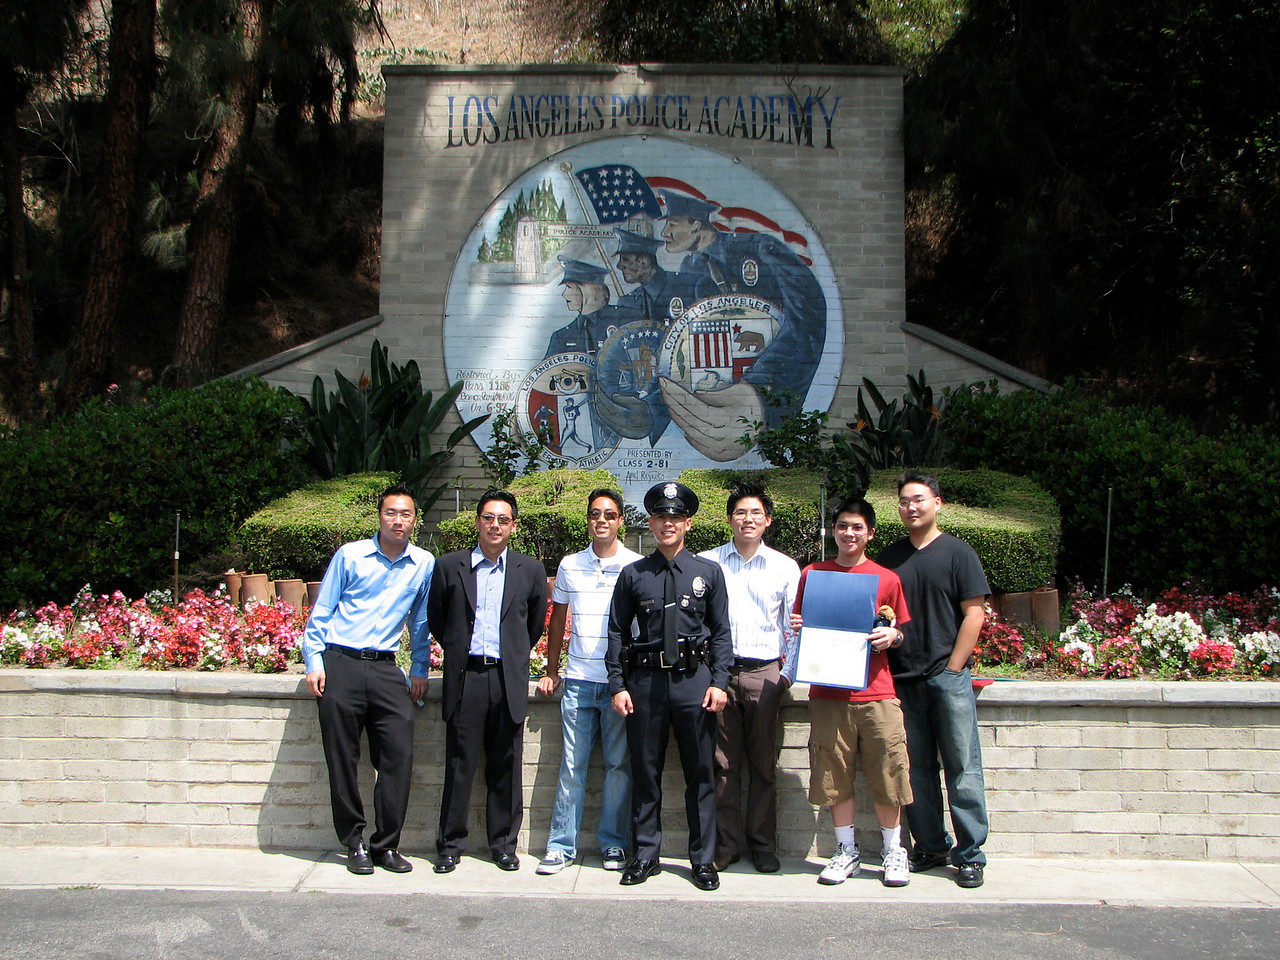 2007 05 25 Fri - LAPD Police Academy mural, friends, & family jpg